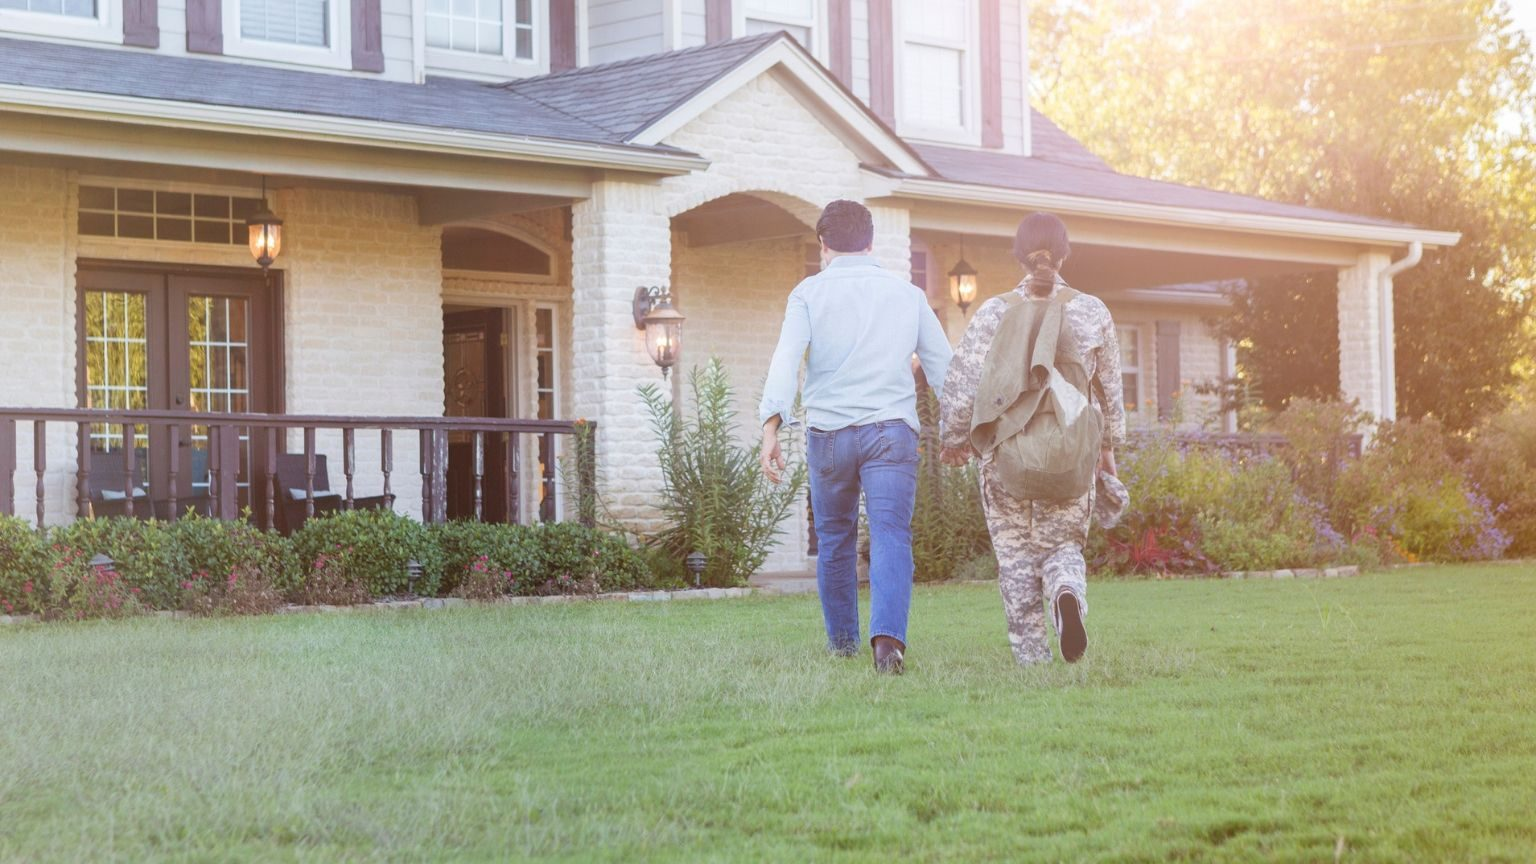 Rear view of husband and military wife entering home together